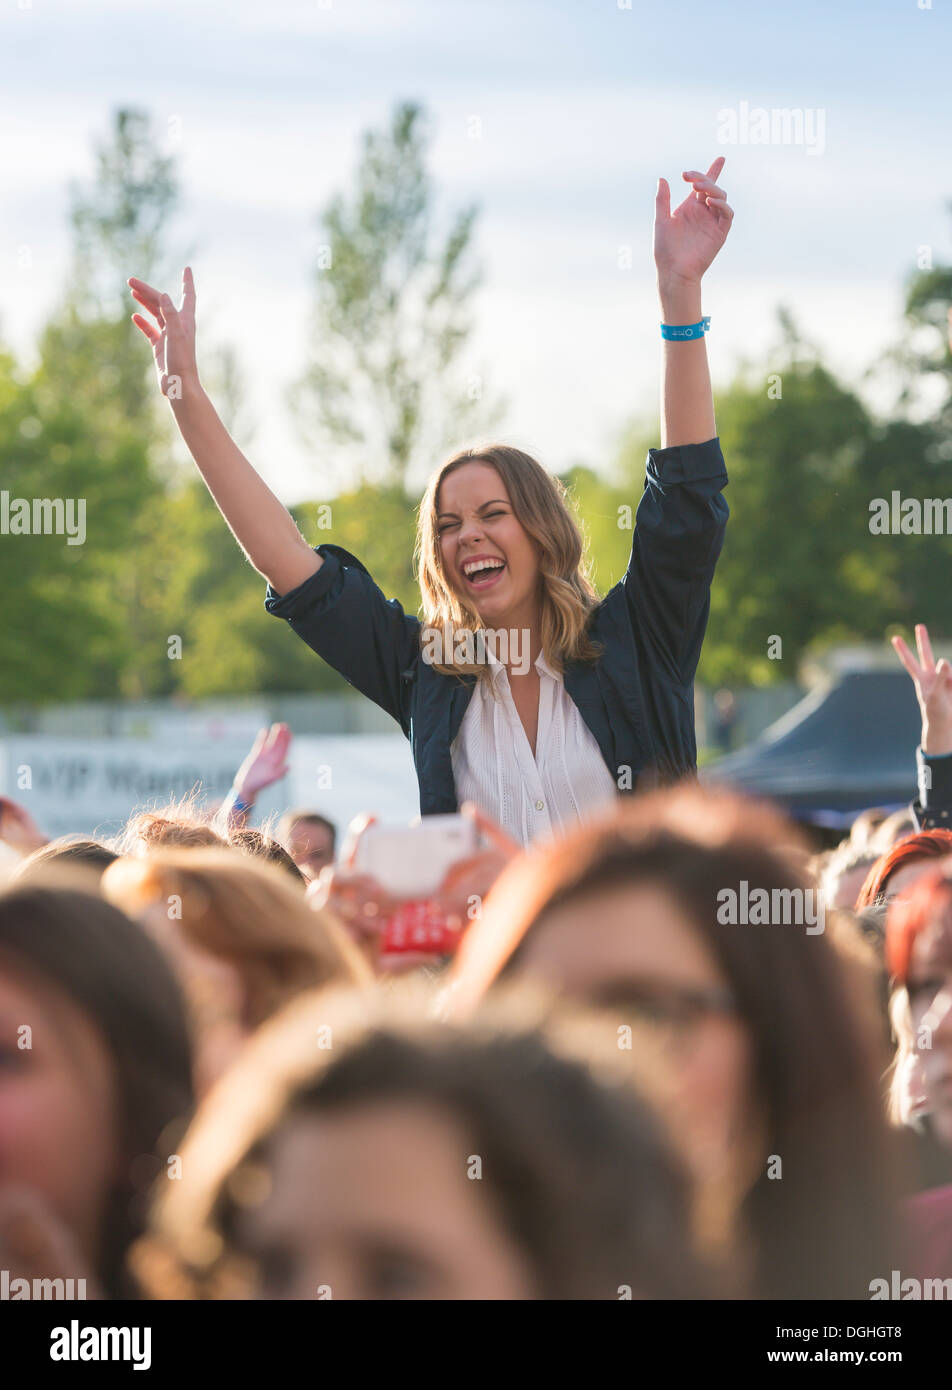 A woman in a crowd at a music concert. - Stock Image